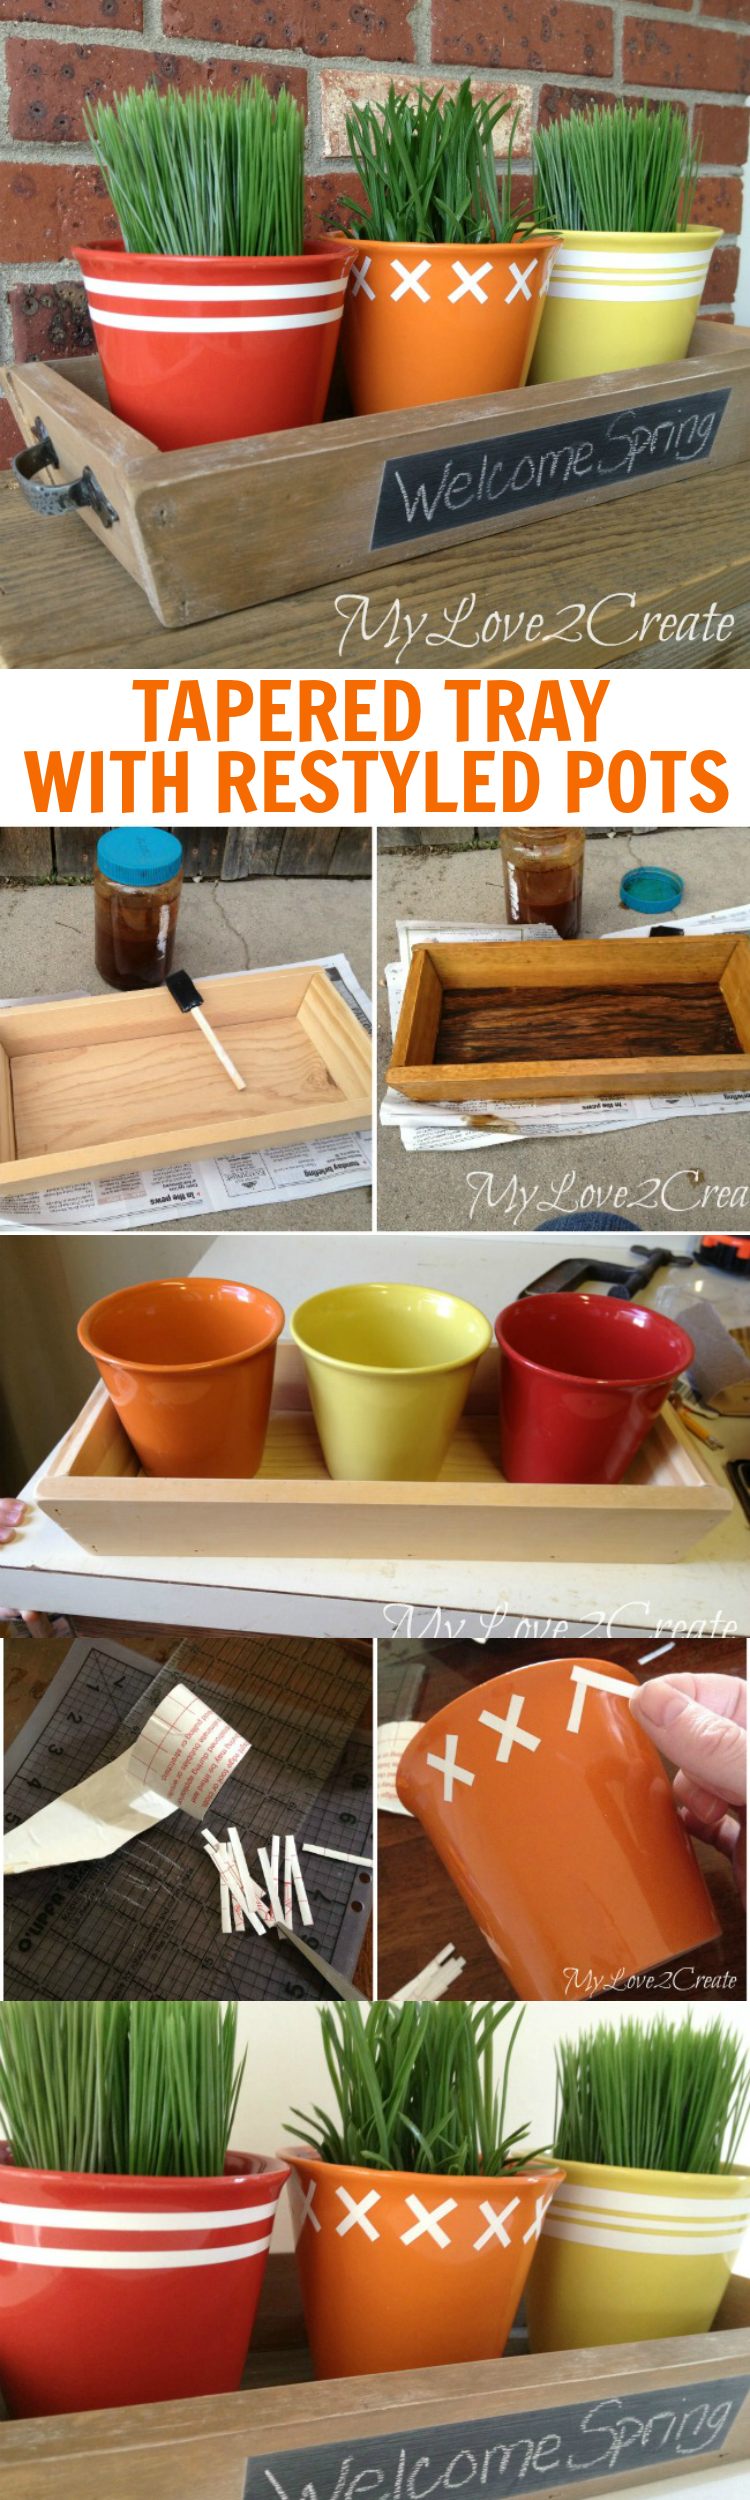 DIY Tapered Tray and Dollar Store Pots Restyled With Contact Paper   My Love 2 Create for OHMY-CREATIVE.COM